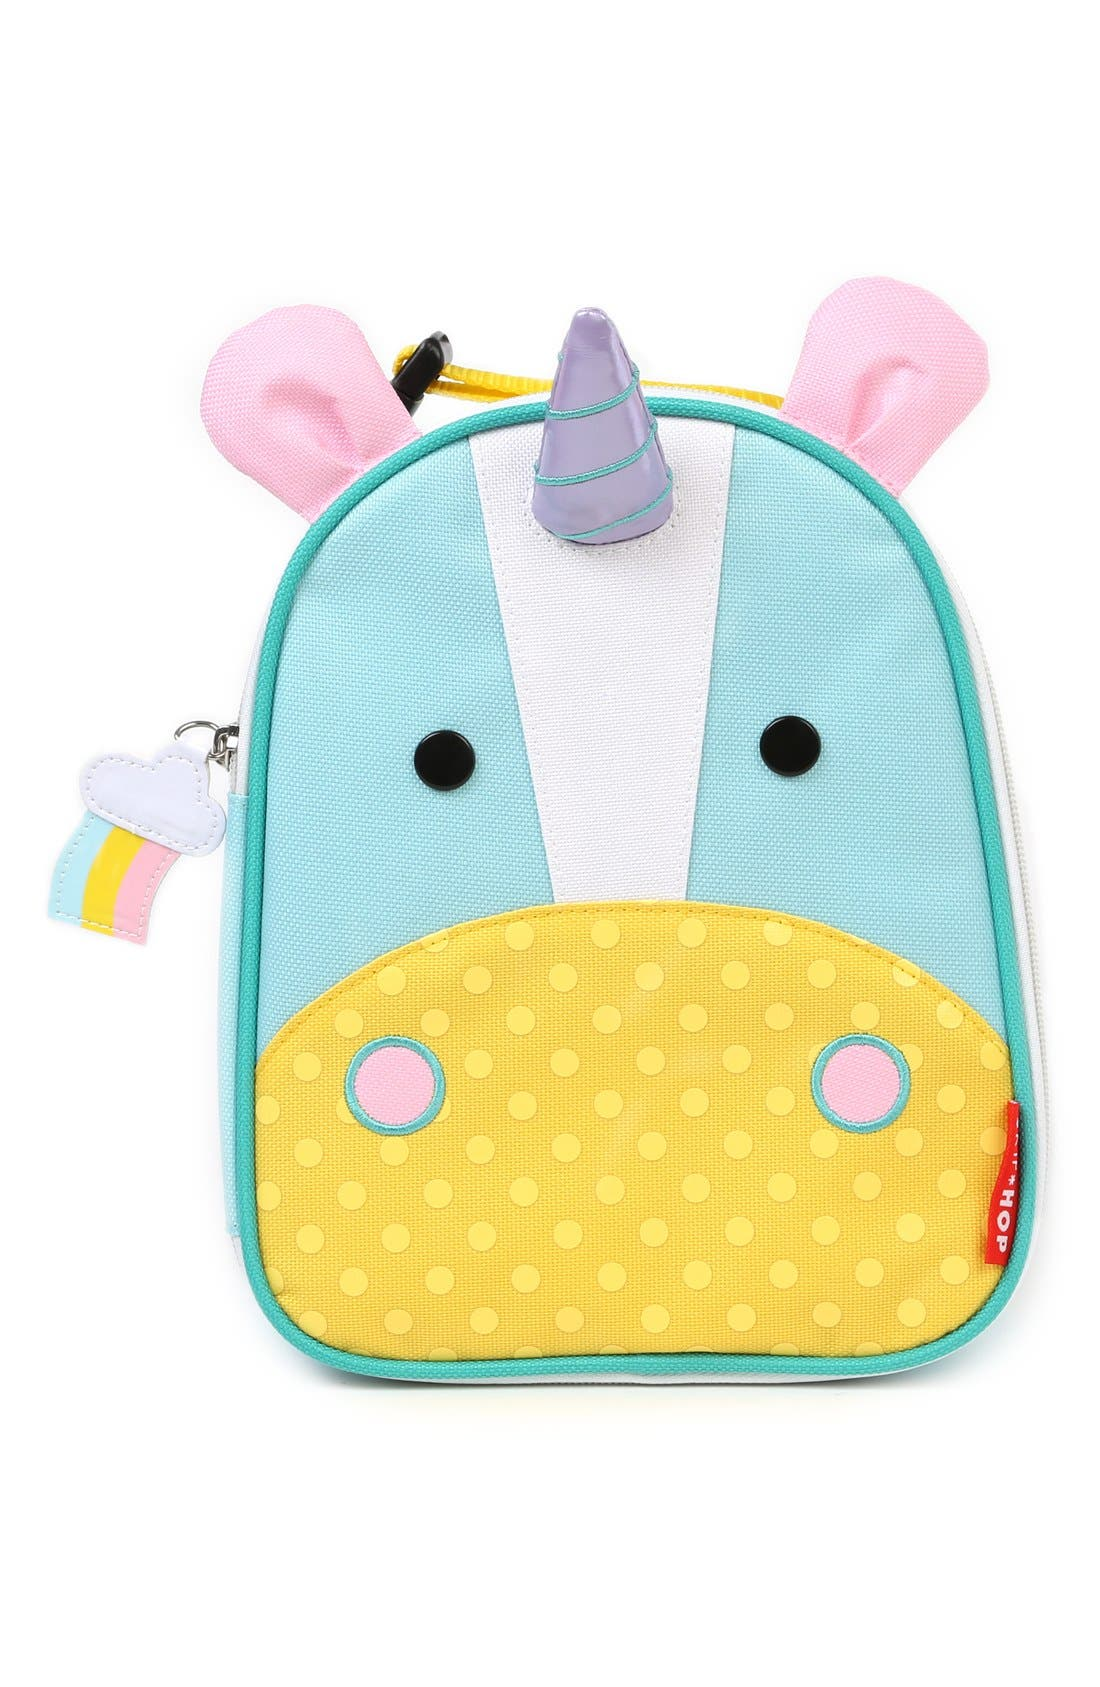 'Zoo Lunchie - Unicorn' Insulated Lunch Bag,                         Main,                         color, Unicorn